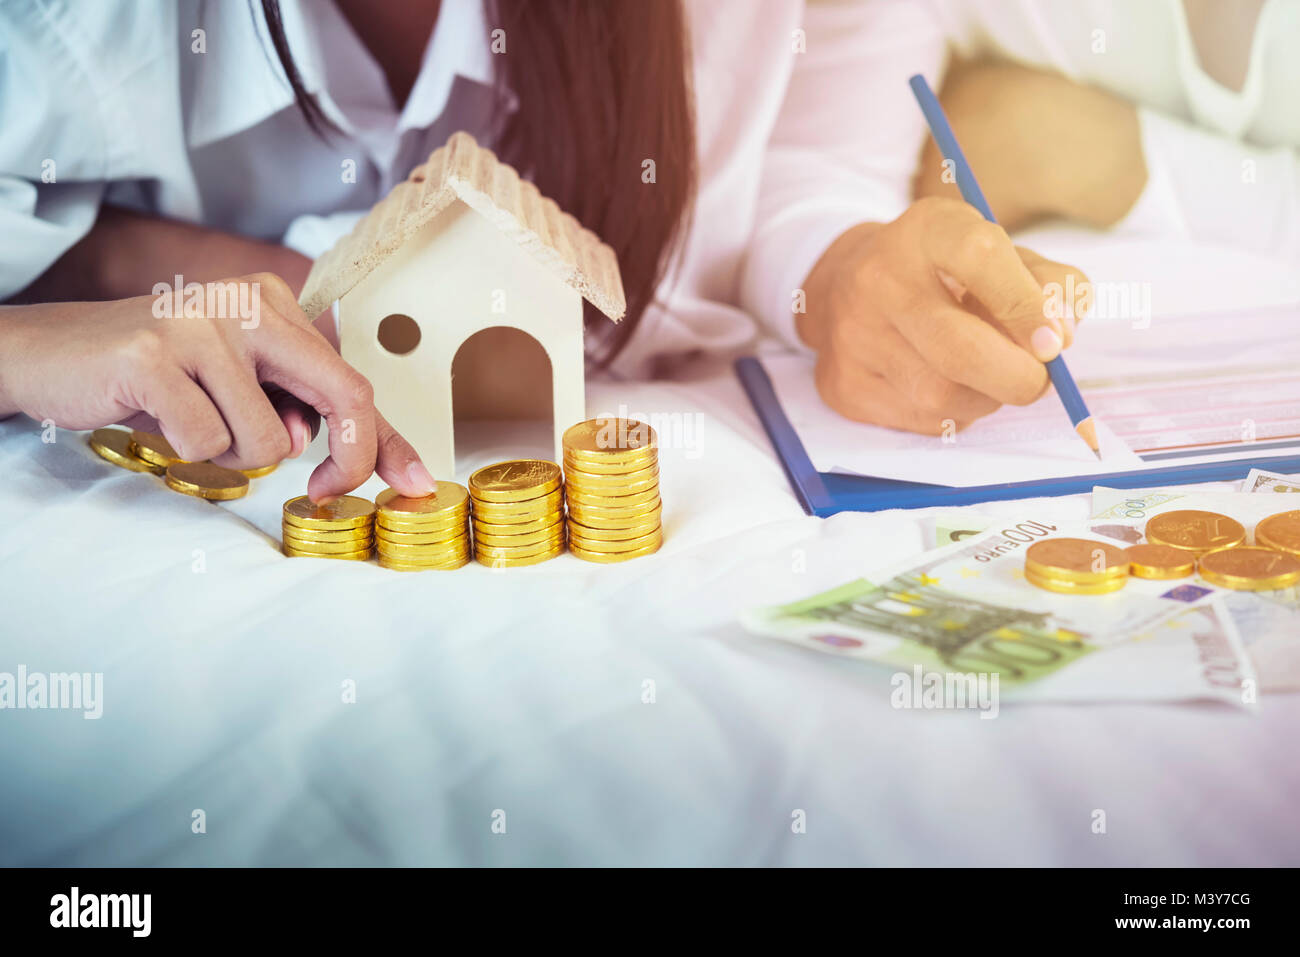 Saving, retirement plan, retirees financial planning concept. Young couple counting money and checking list. Family - Stock Image